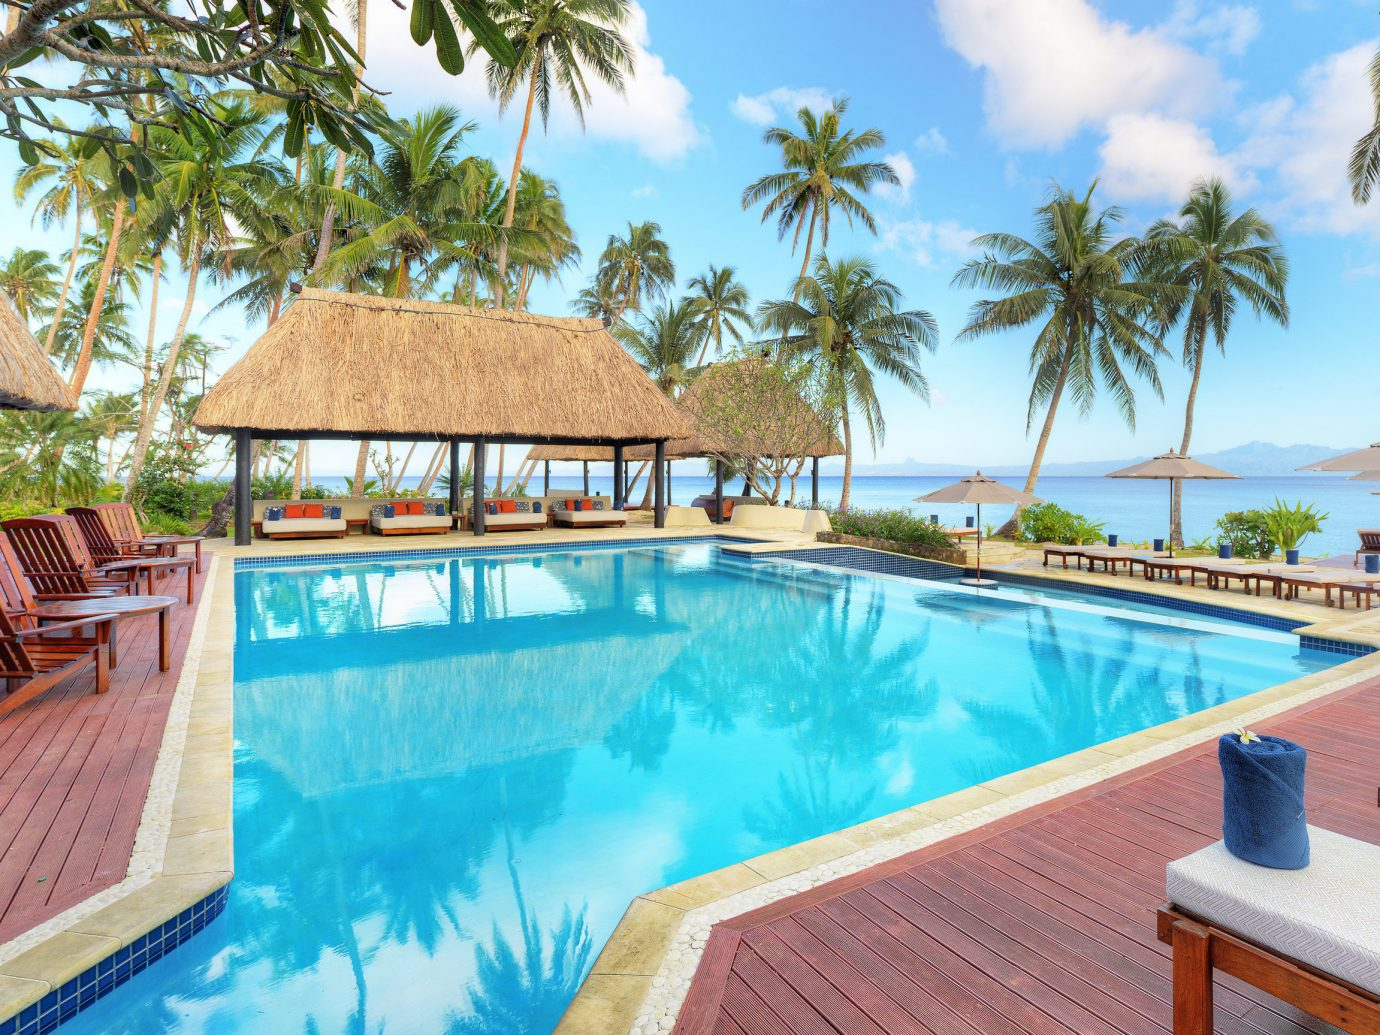 All-Inclusive Resorts Family Travel Hotels tree outdoor Resort property swimming pool chair leisure wooden building estate real estate Pool Villa vacation resort town caribbean palm tree cottage hacienda tropics arecales hotel wood furniture